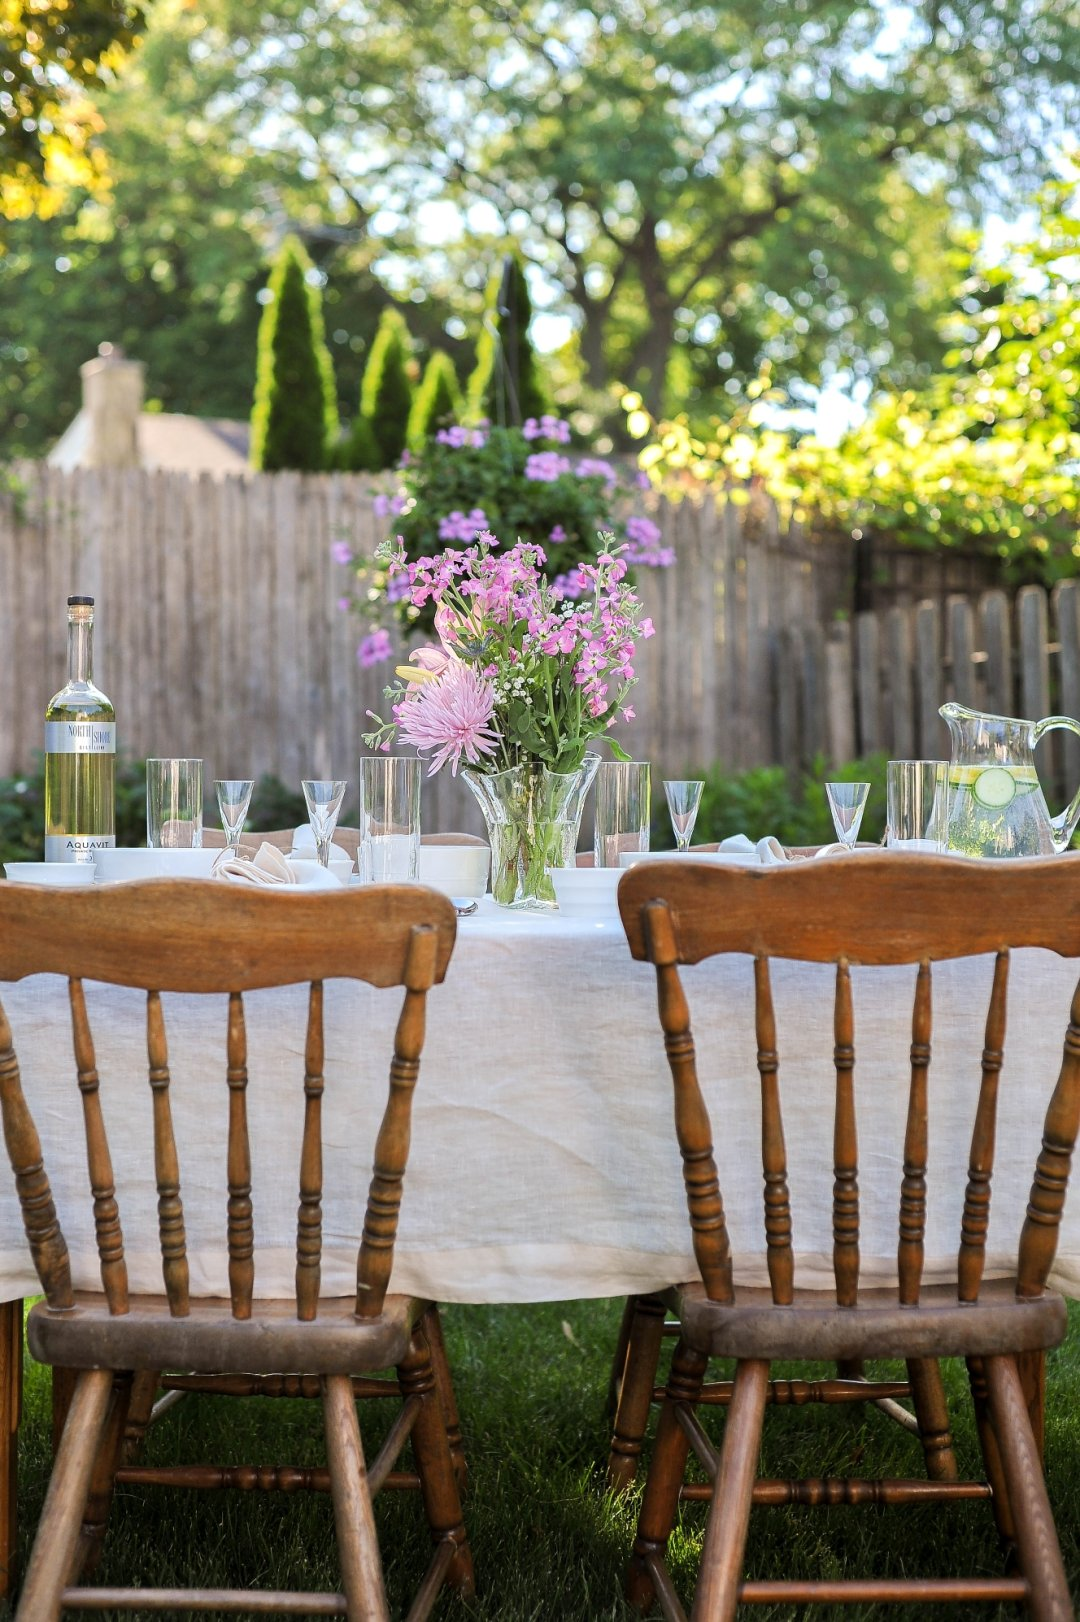 Two chairs at outdoor table set for party